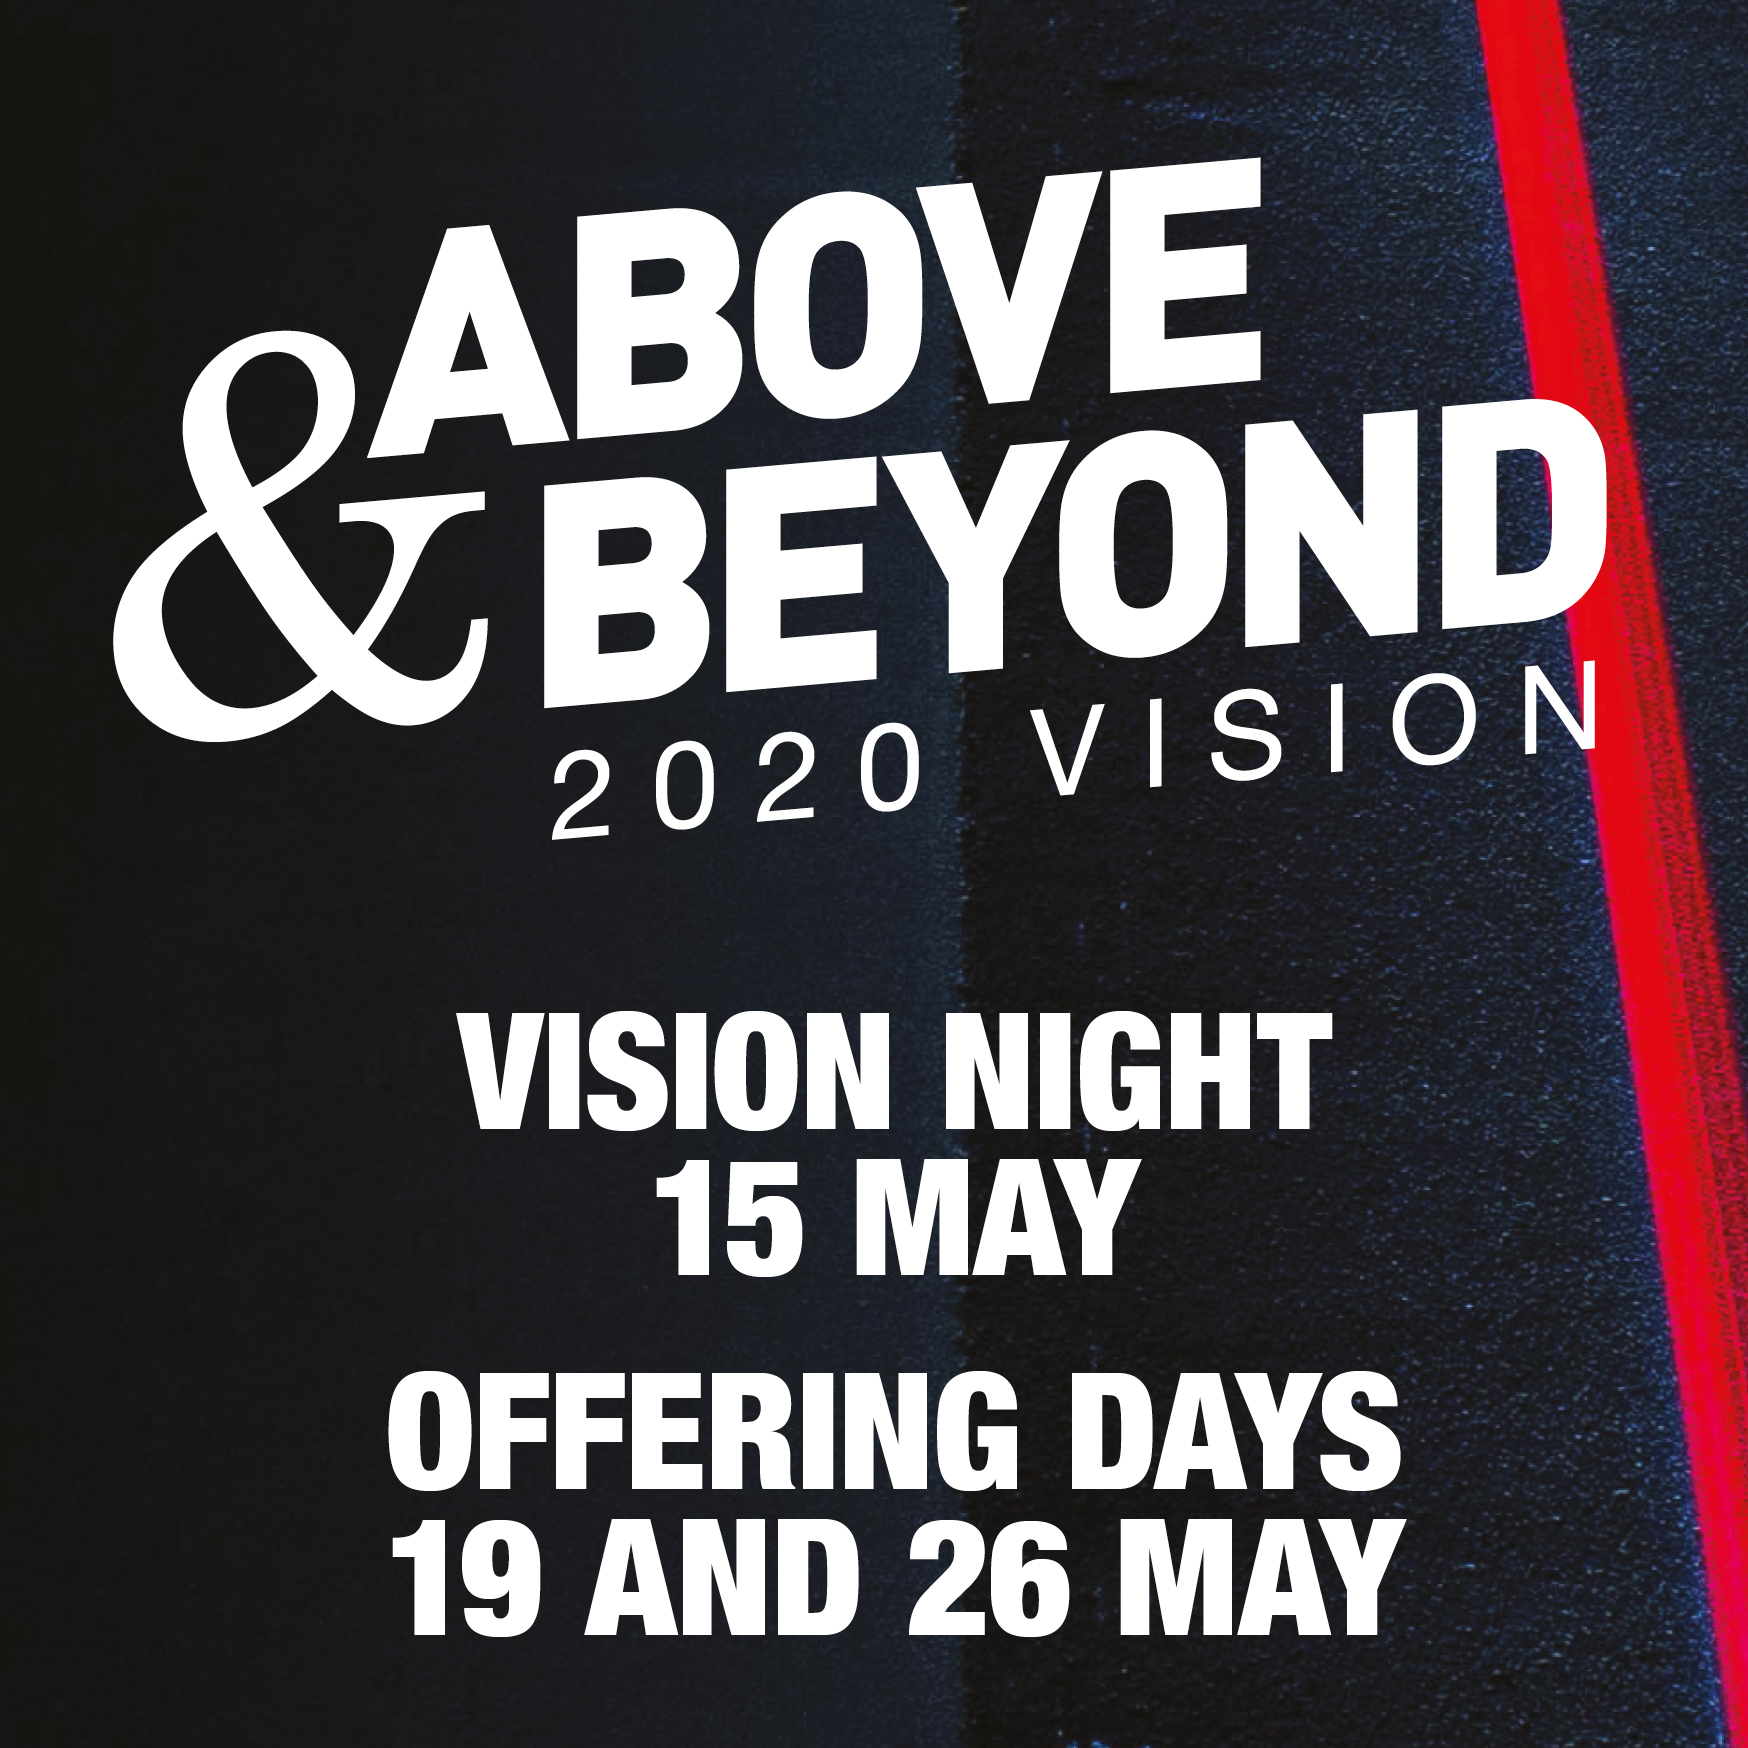 Above and Beyond* Vision night & Offering *Click tor more info